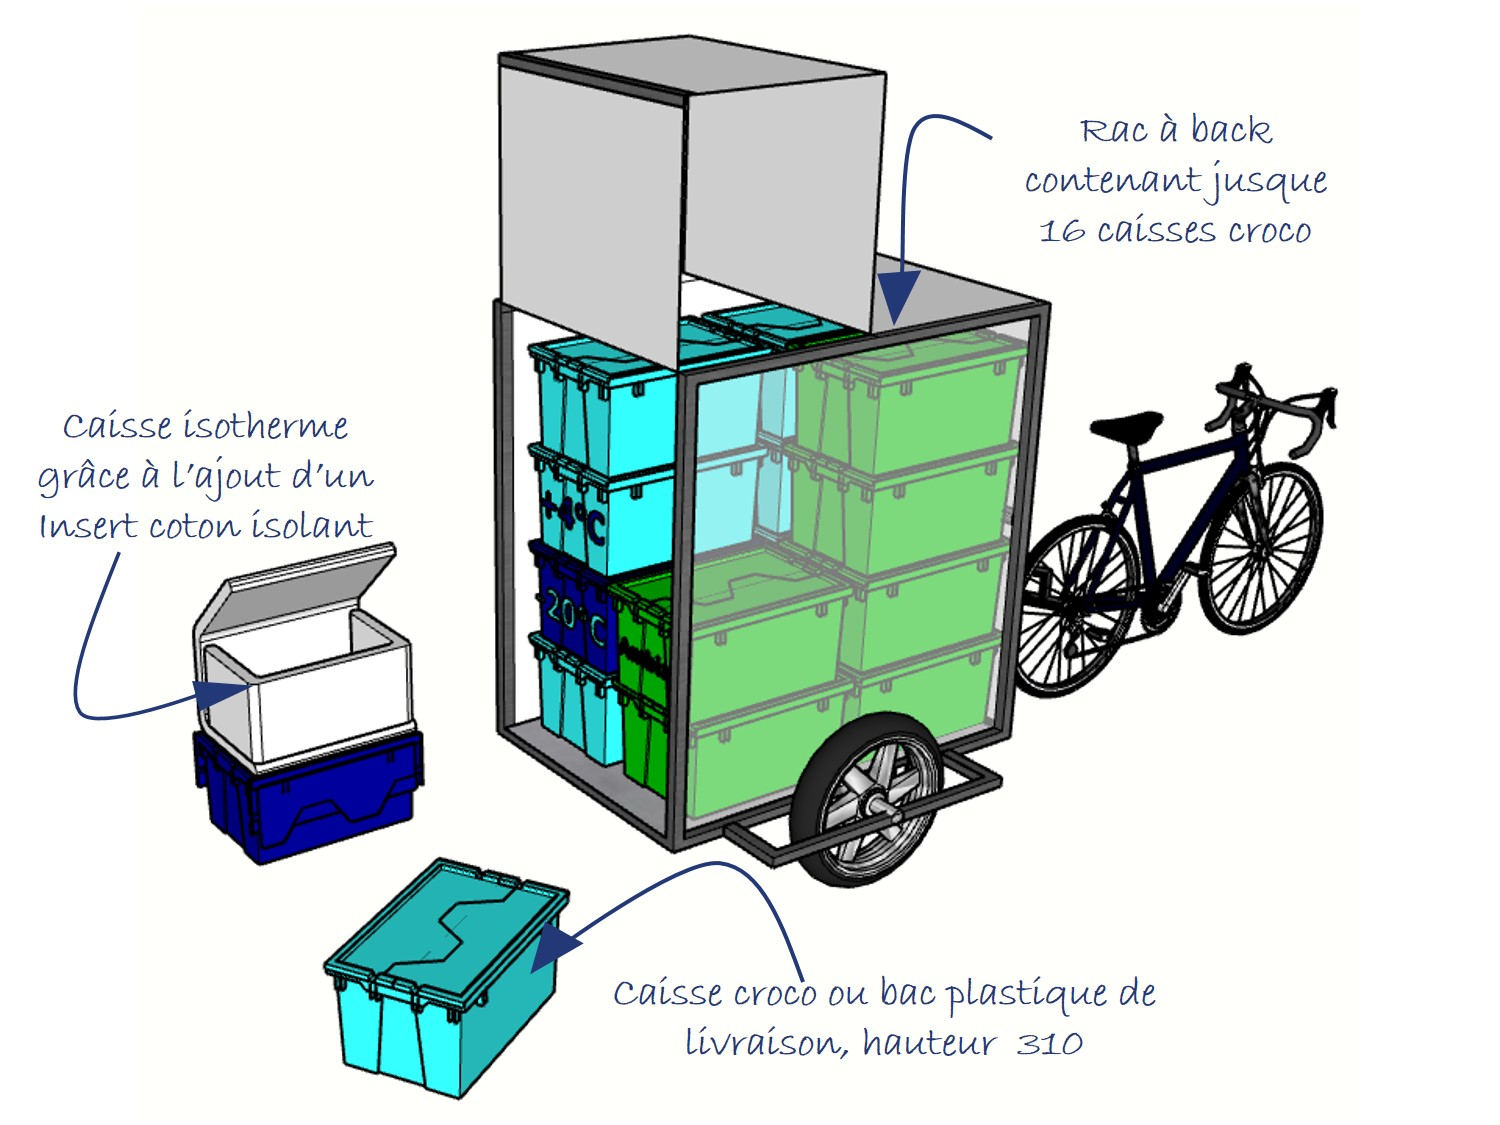 Insulated box transport with insulating insert COLD & CO in 600x400 mm boxes, all in the tray rack of the Fleximodal bicycle trailer.